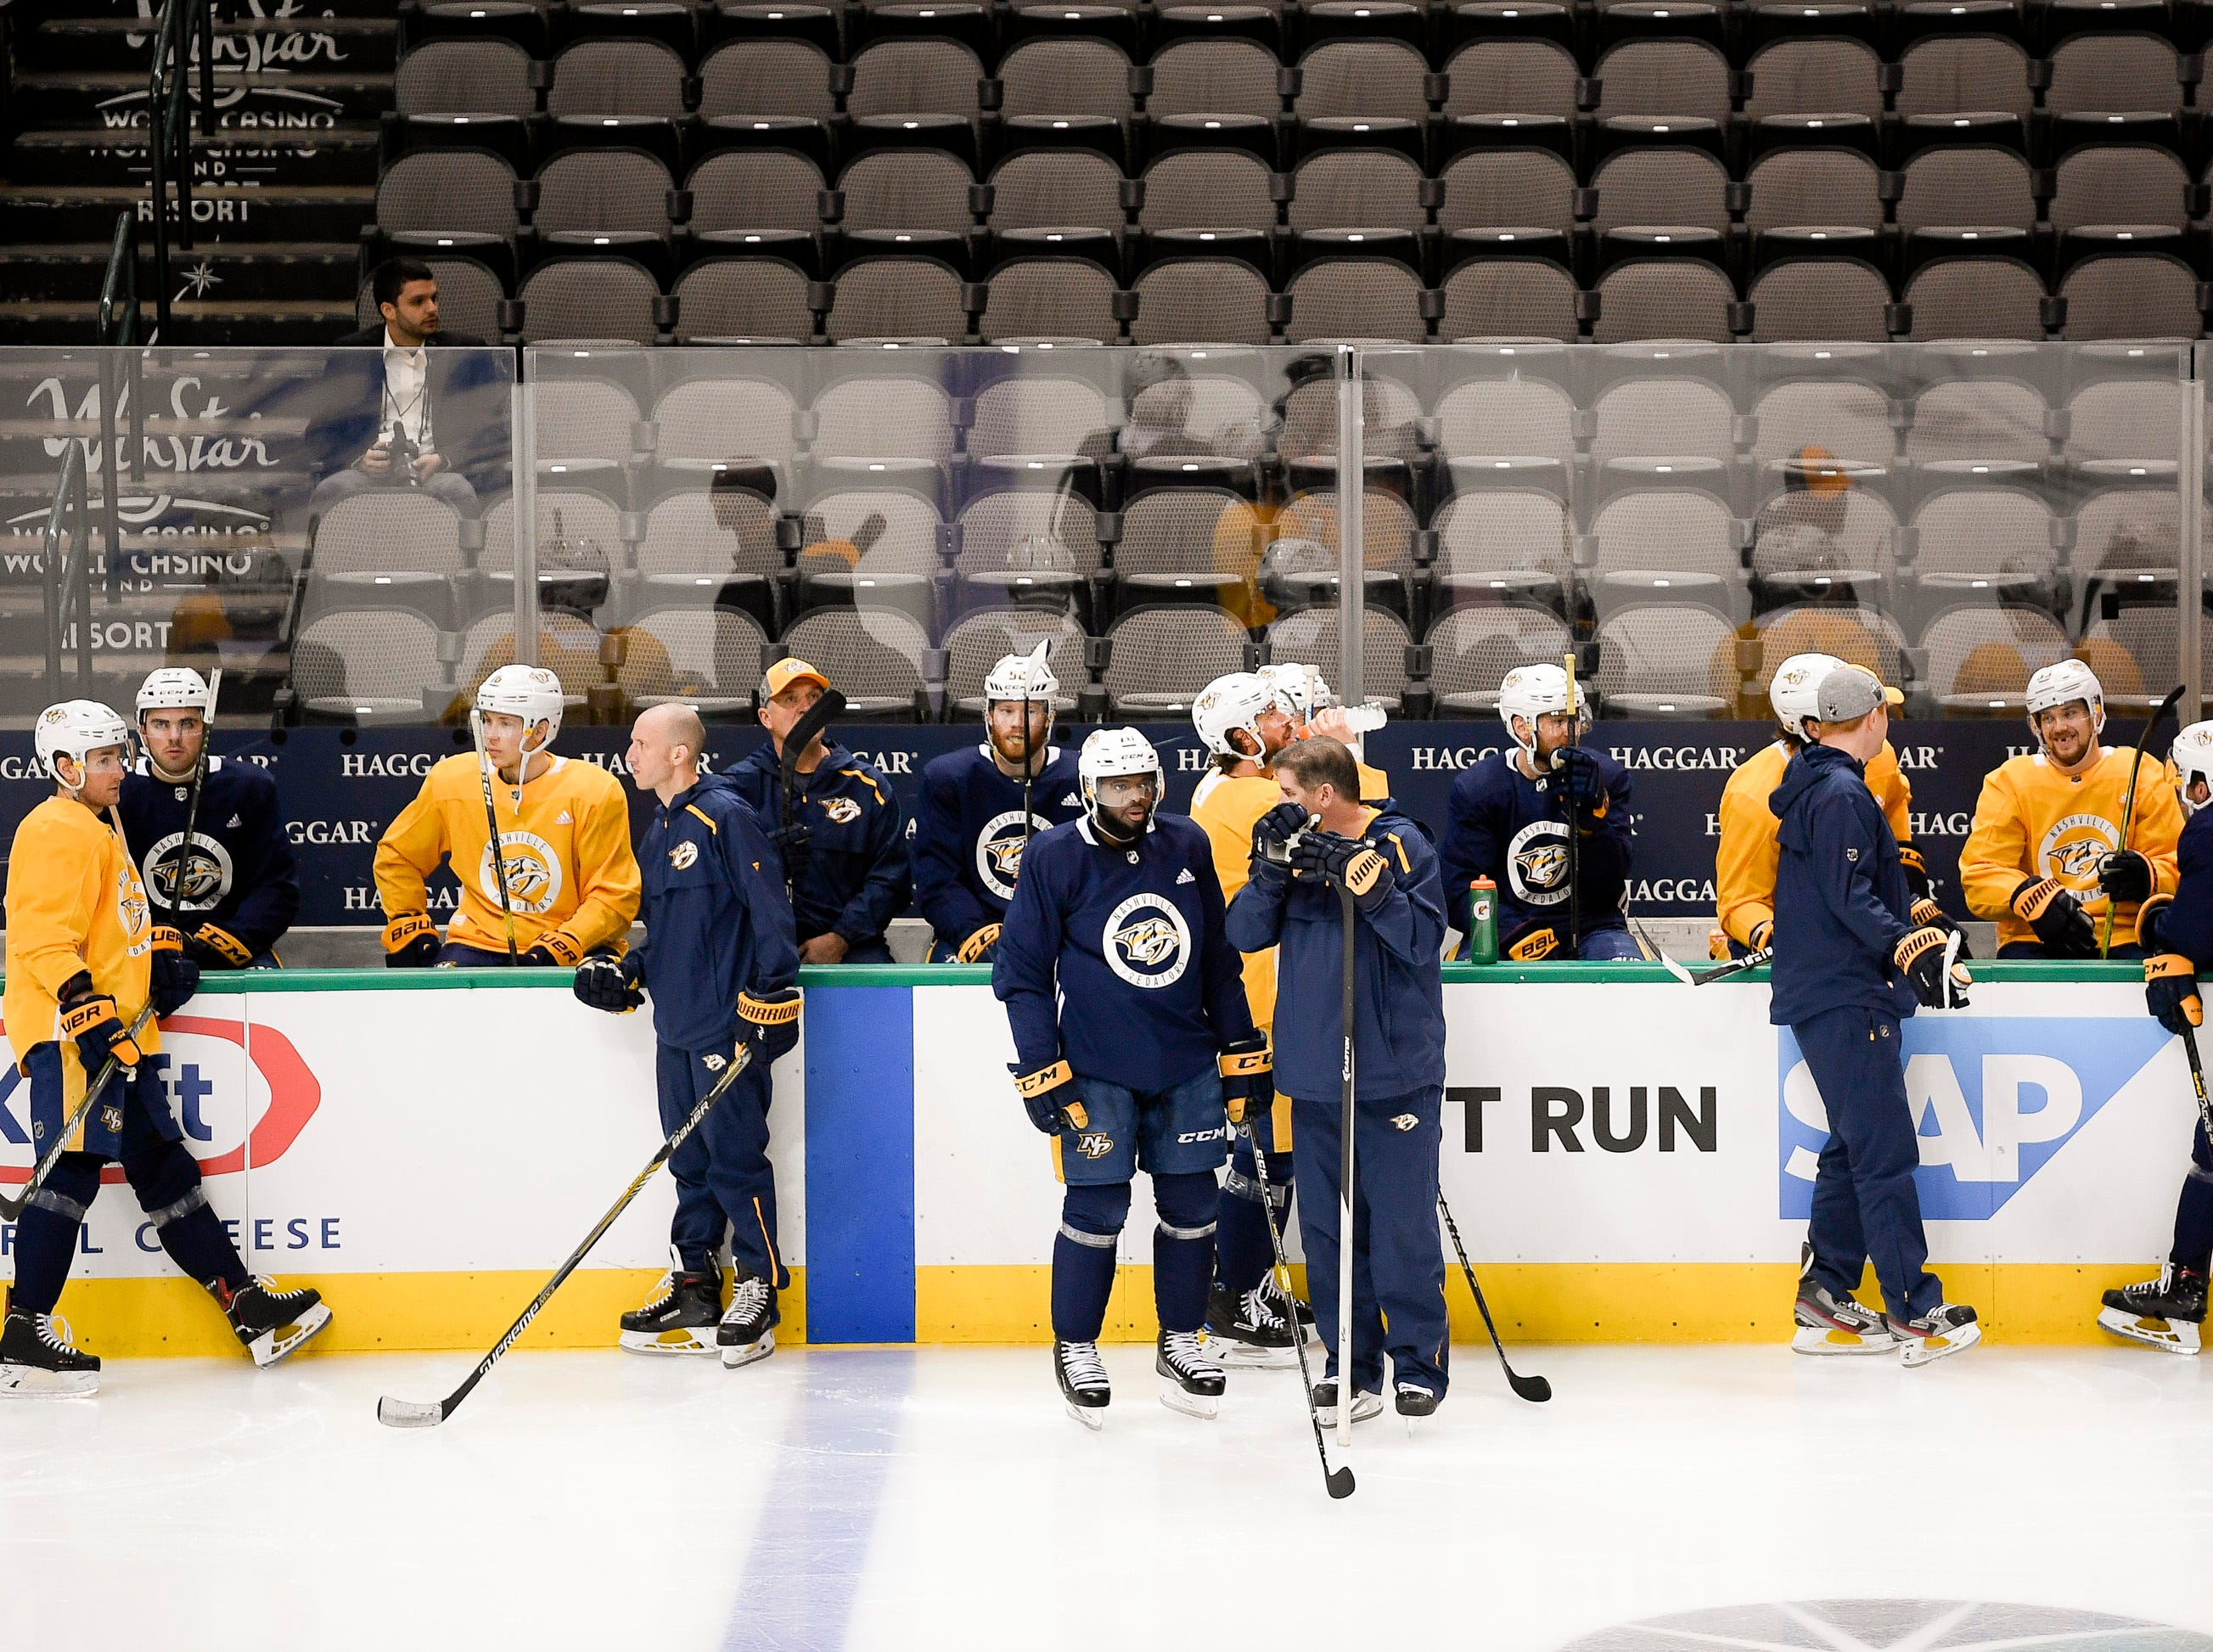 The Nashville Predators wait for practice to begin before the divisional semifinal game at the American Airlines Center in Dallas, Texas., Monday, April 15, 2019.